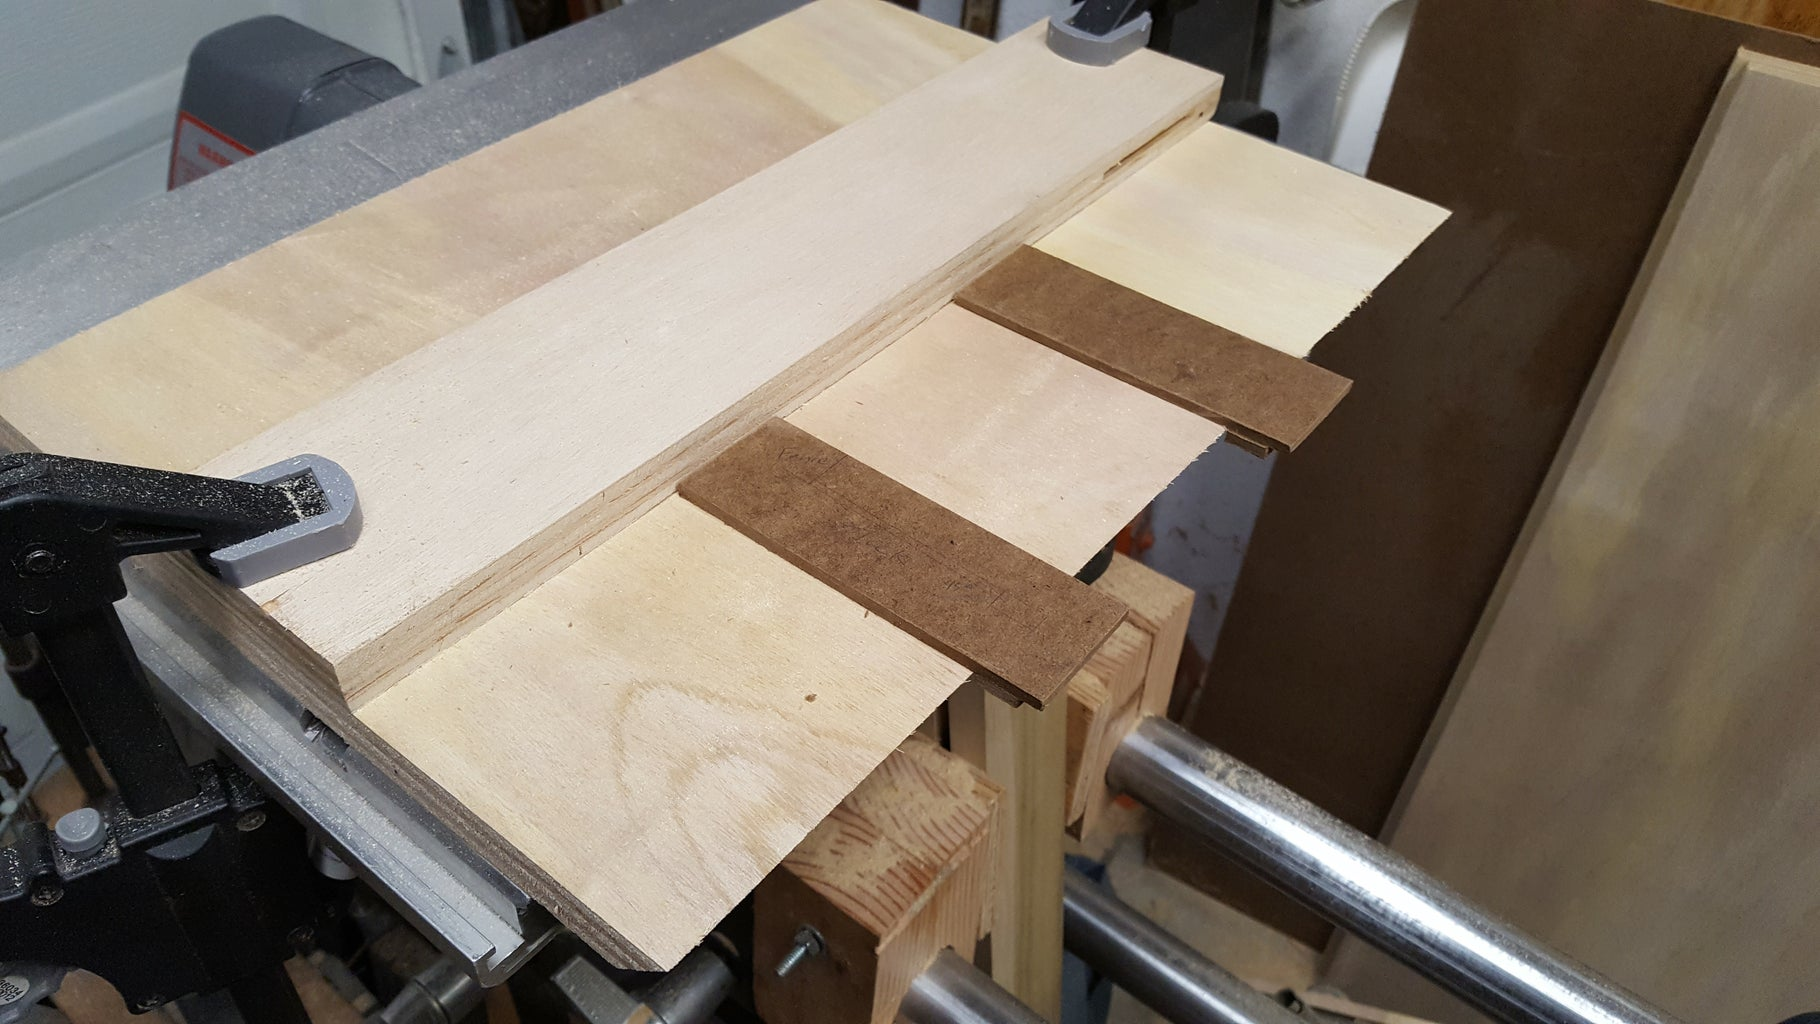 Cut the Lid and Seat Pieces